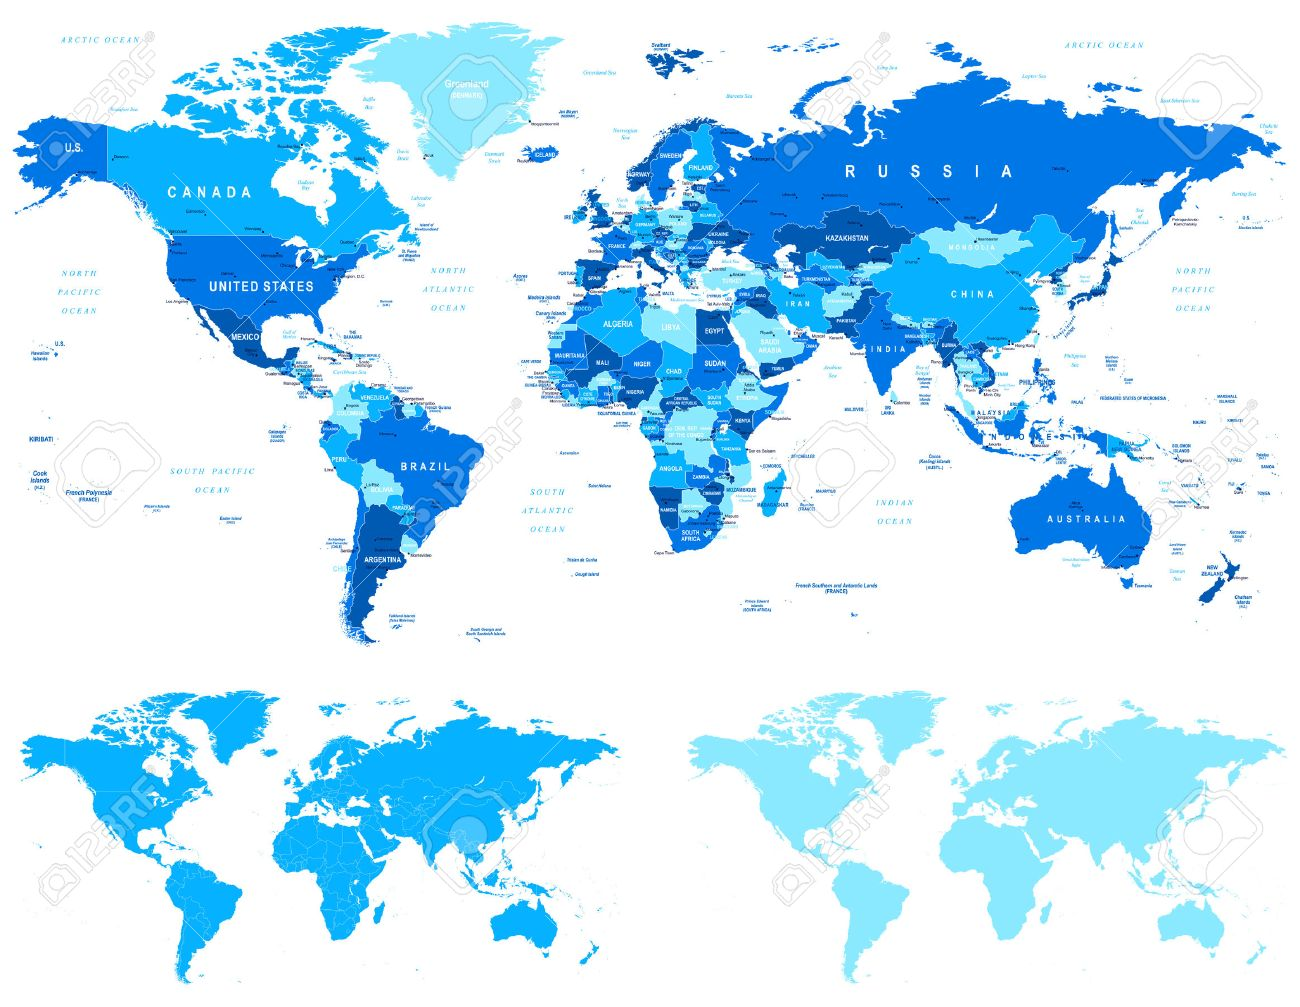 World map countries stock photos royalty free world map countries blue world map borders countries and cities illustration maps with different gumiabroncs Image collections